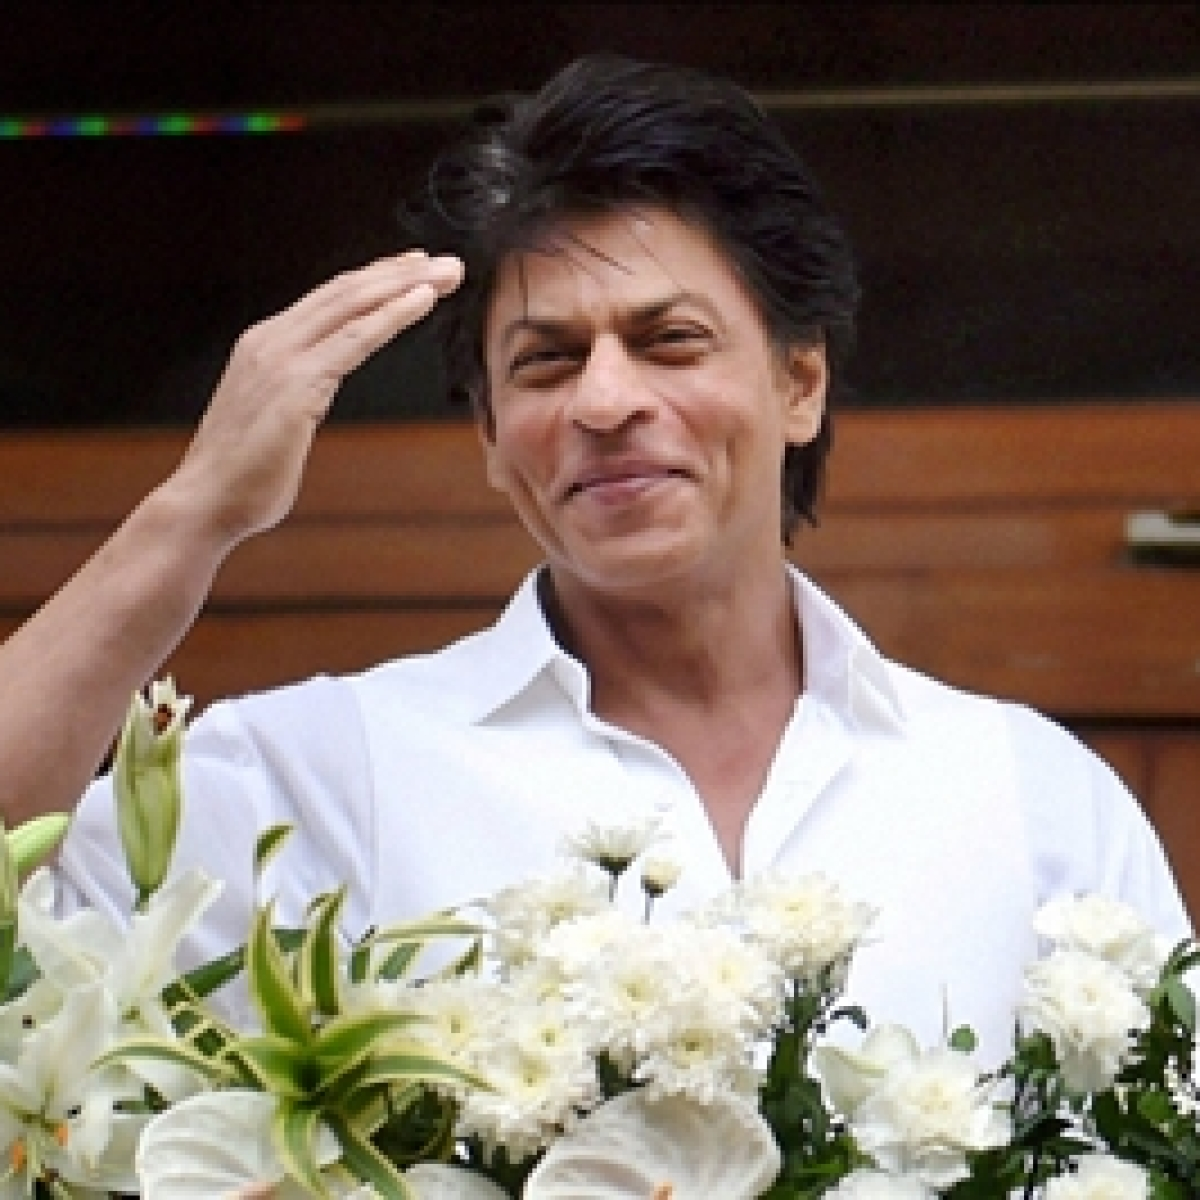 Shah Rukh Khan marks 27 years in Indian Cinema, thanks to fans